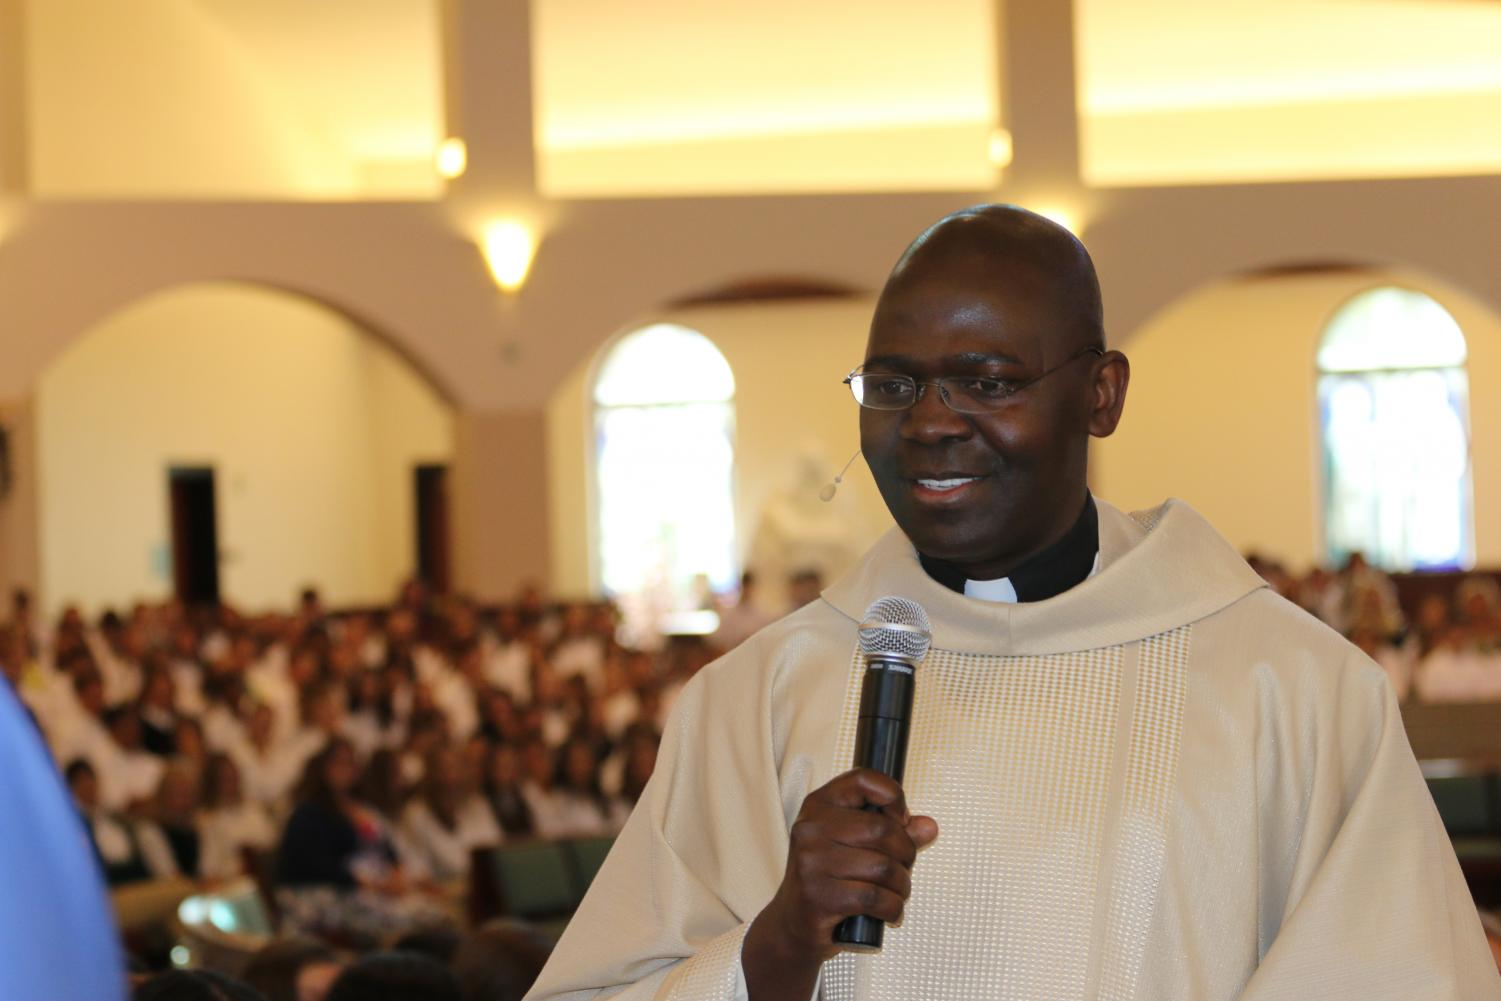 Father Richard leads a Welcome Back Mass in August of 2016.